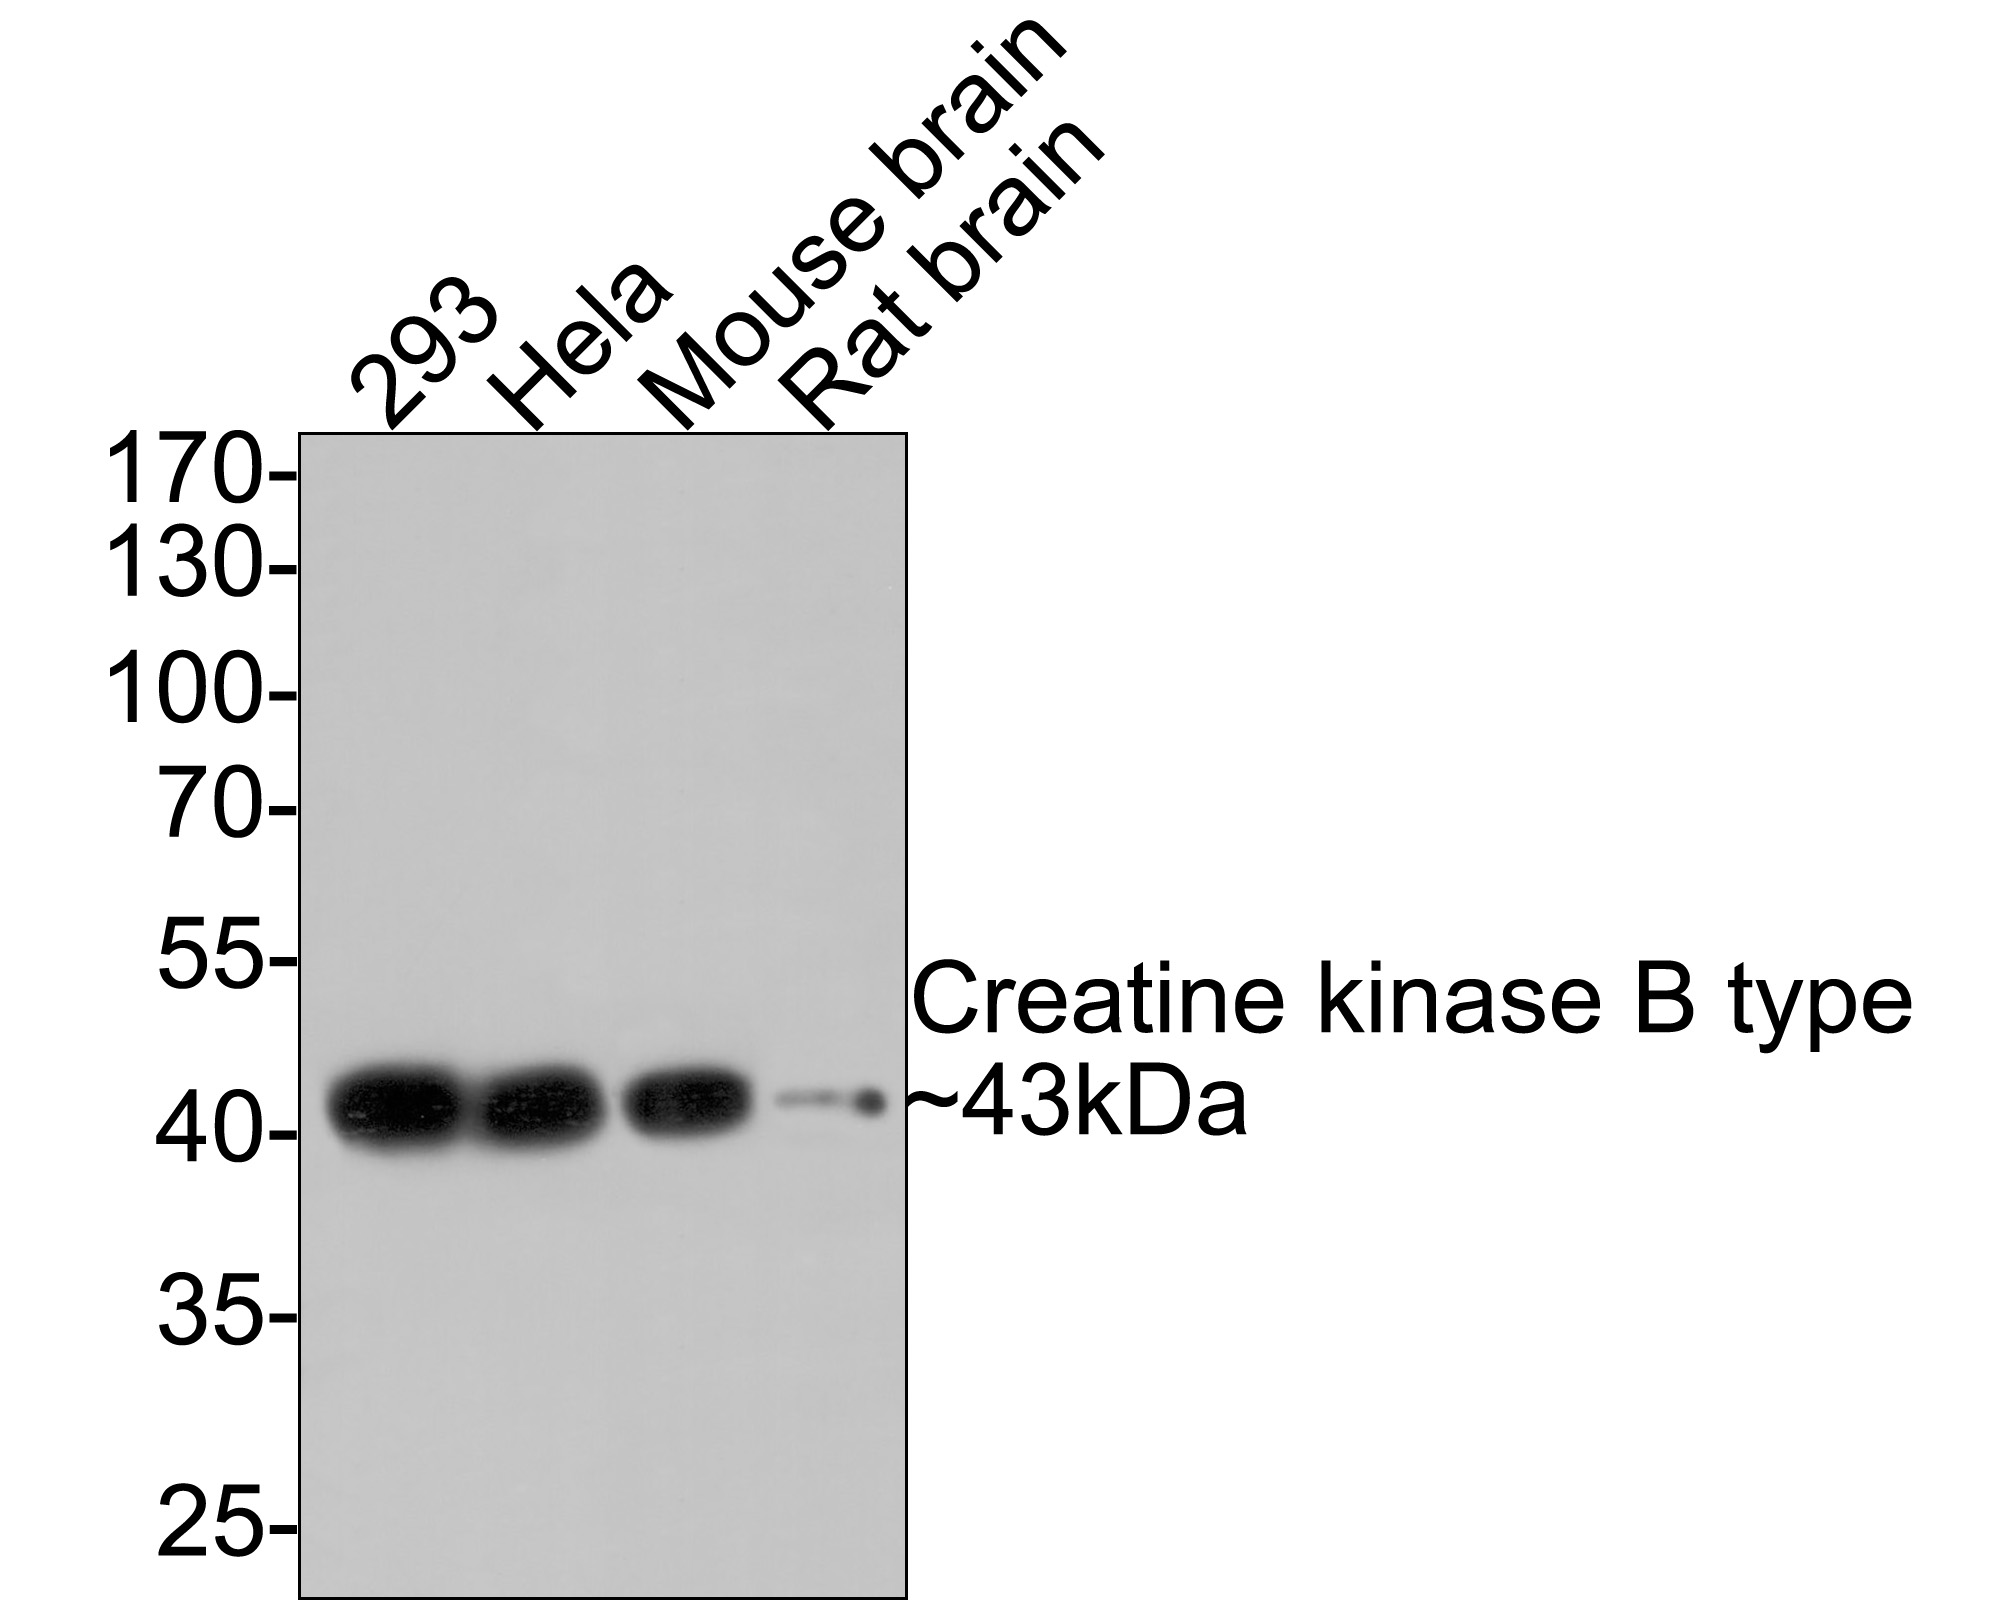 Western blot analysis of Creatine kinase B type on different lysates using anti-Creatine kinase B type antibody at 1/500 dilution.<br />   Positive control:<br />   Lane 1: Mouse brain <br />   Lane 2: Mouse brain<br />   Lane 3: Rat brain <br />   Lane 4: 293